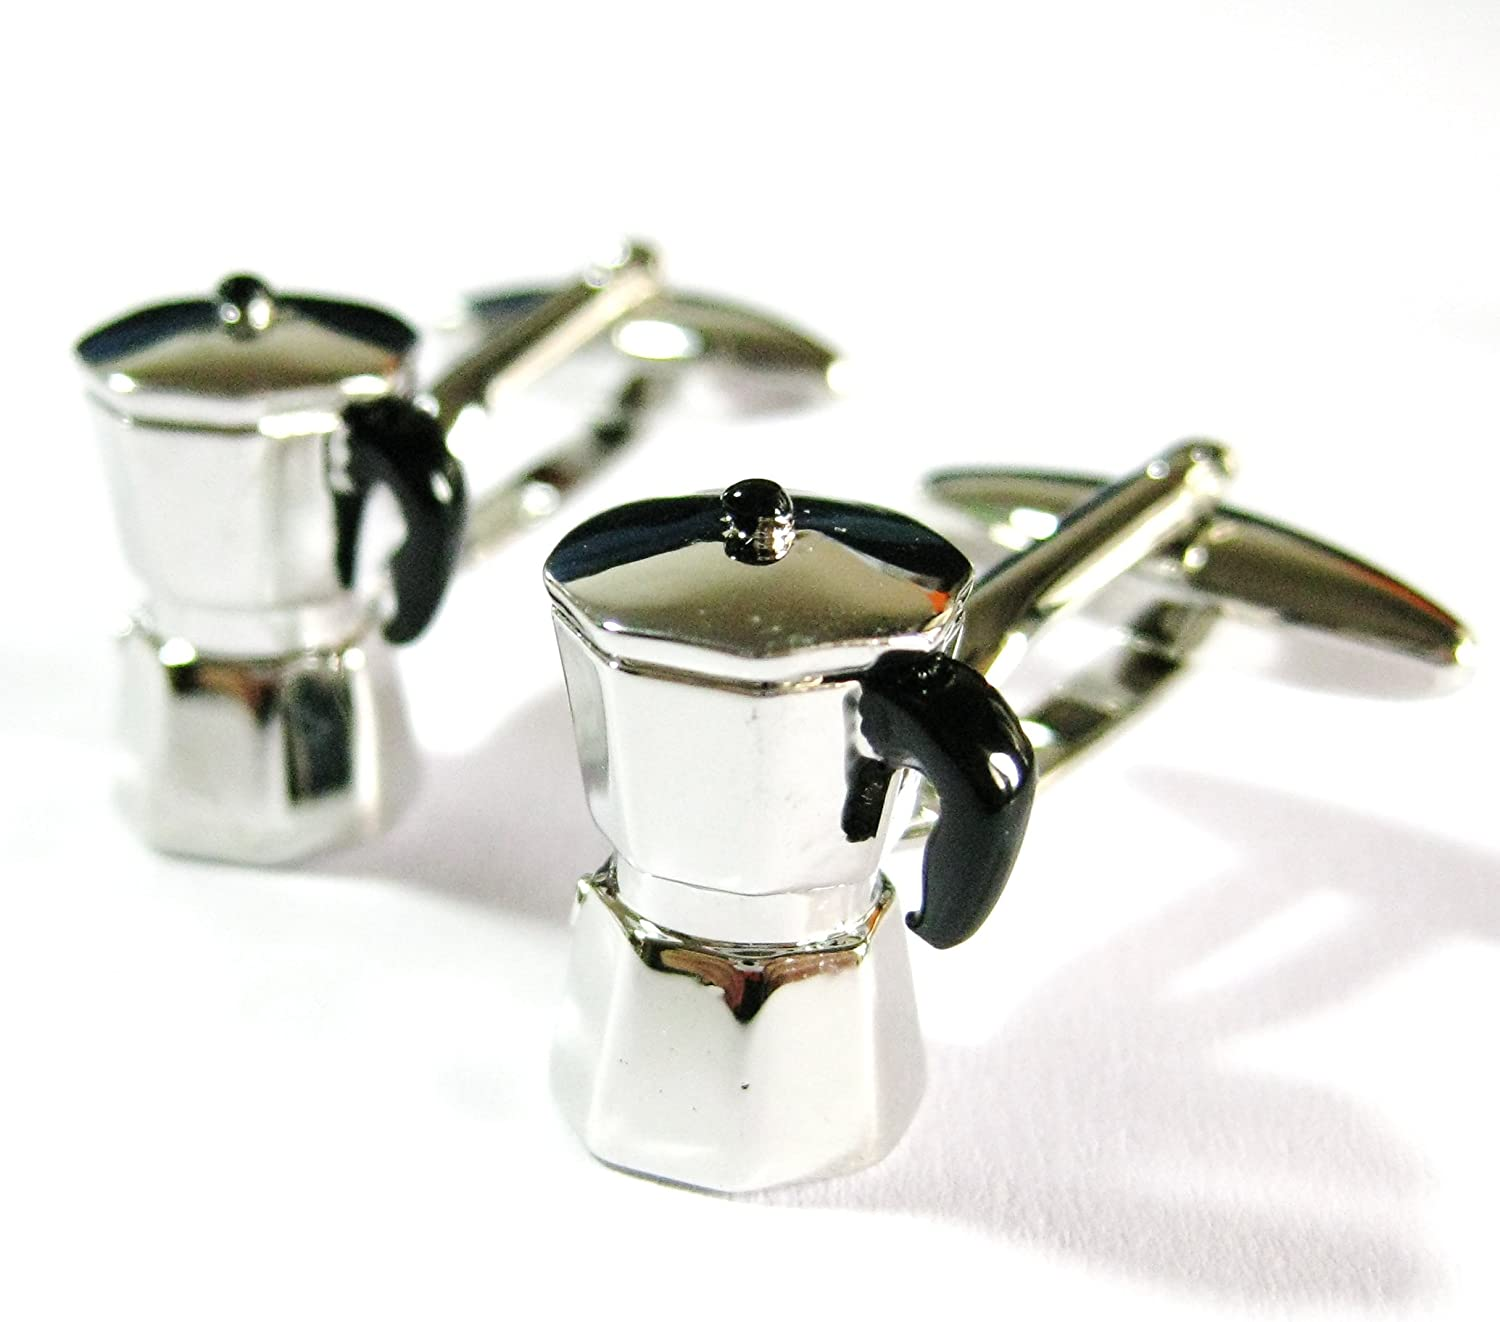 Tailor B 3D Italian Coffee Maker Cufflinks Breakfast Cuff Links 230209-1 NO BOX